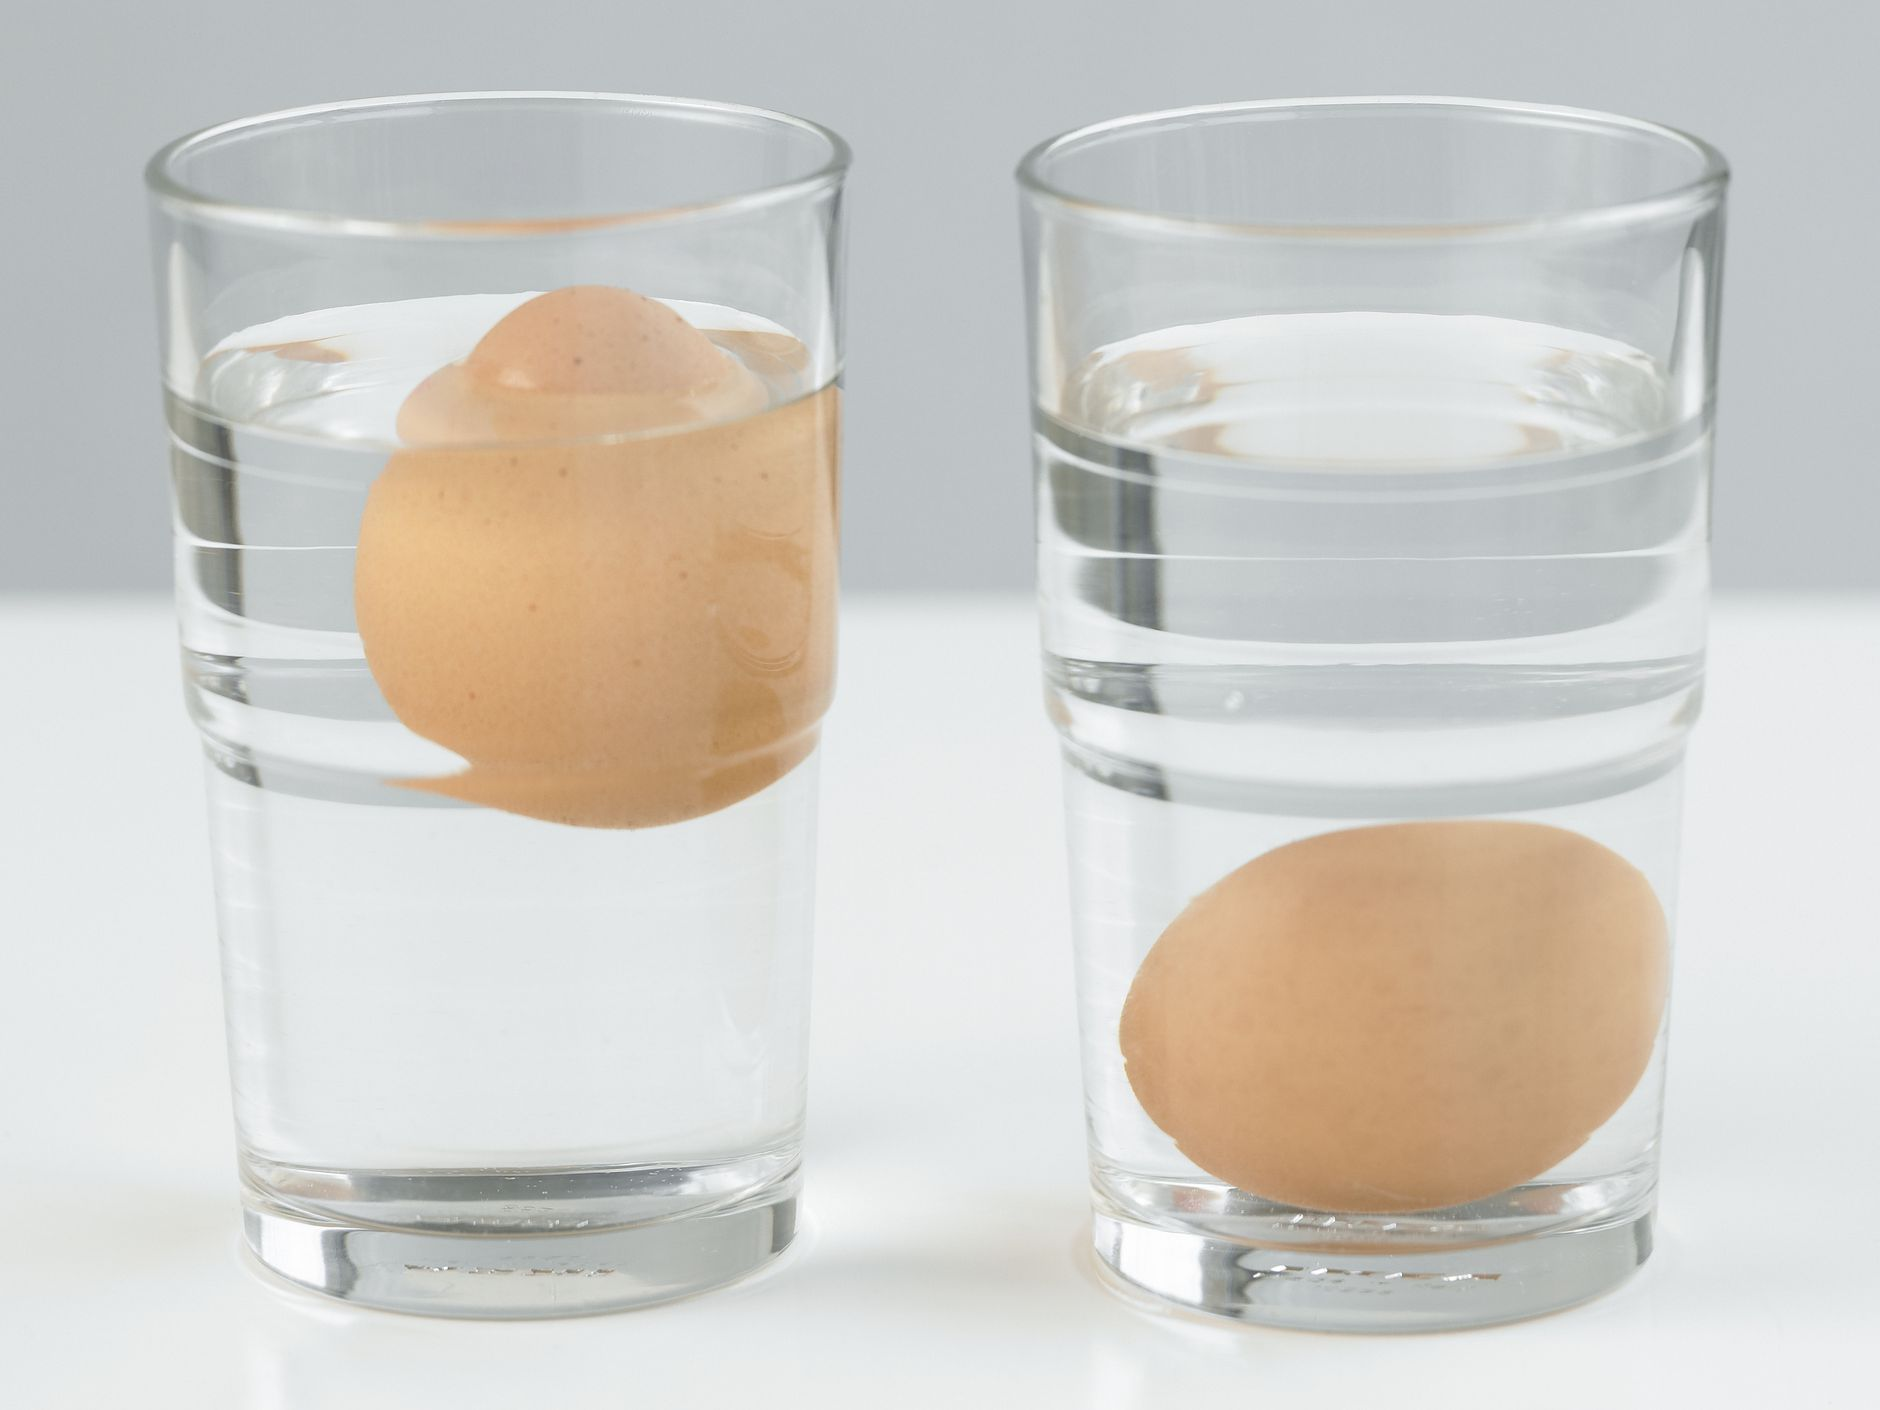 Testing Eggs for Freshness and Safety